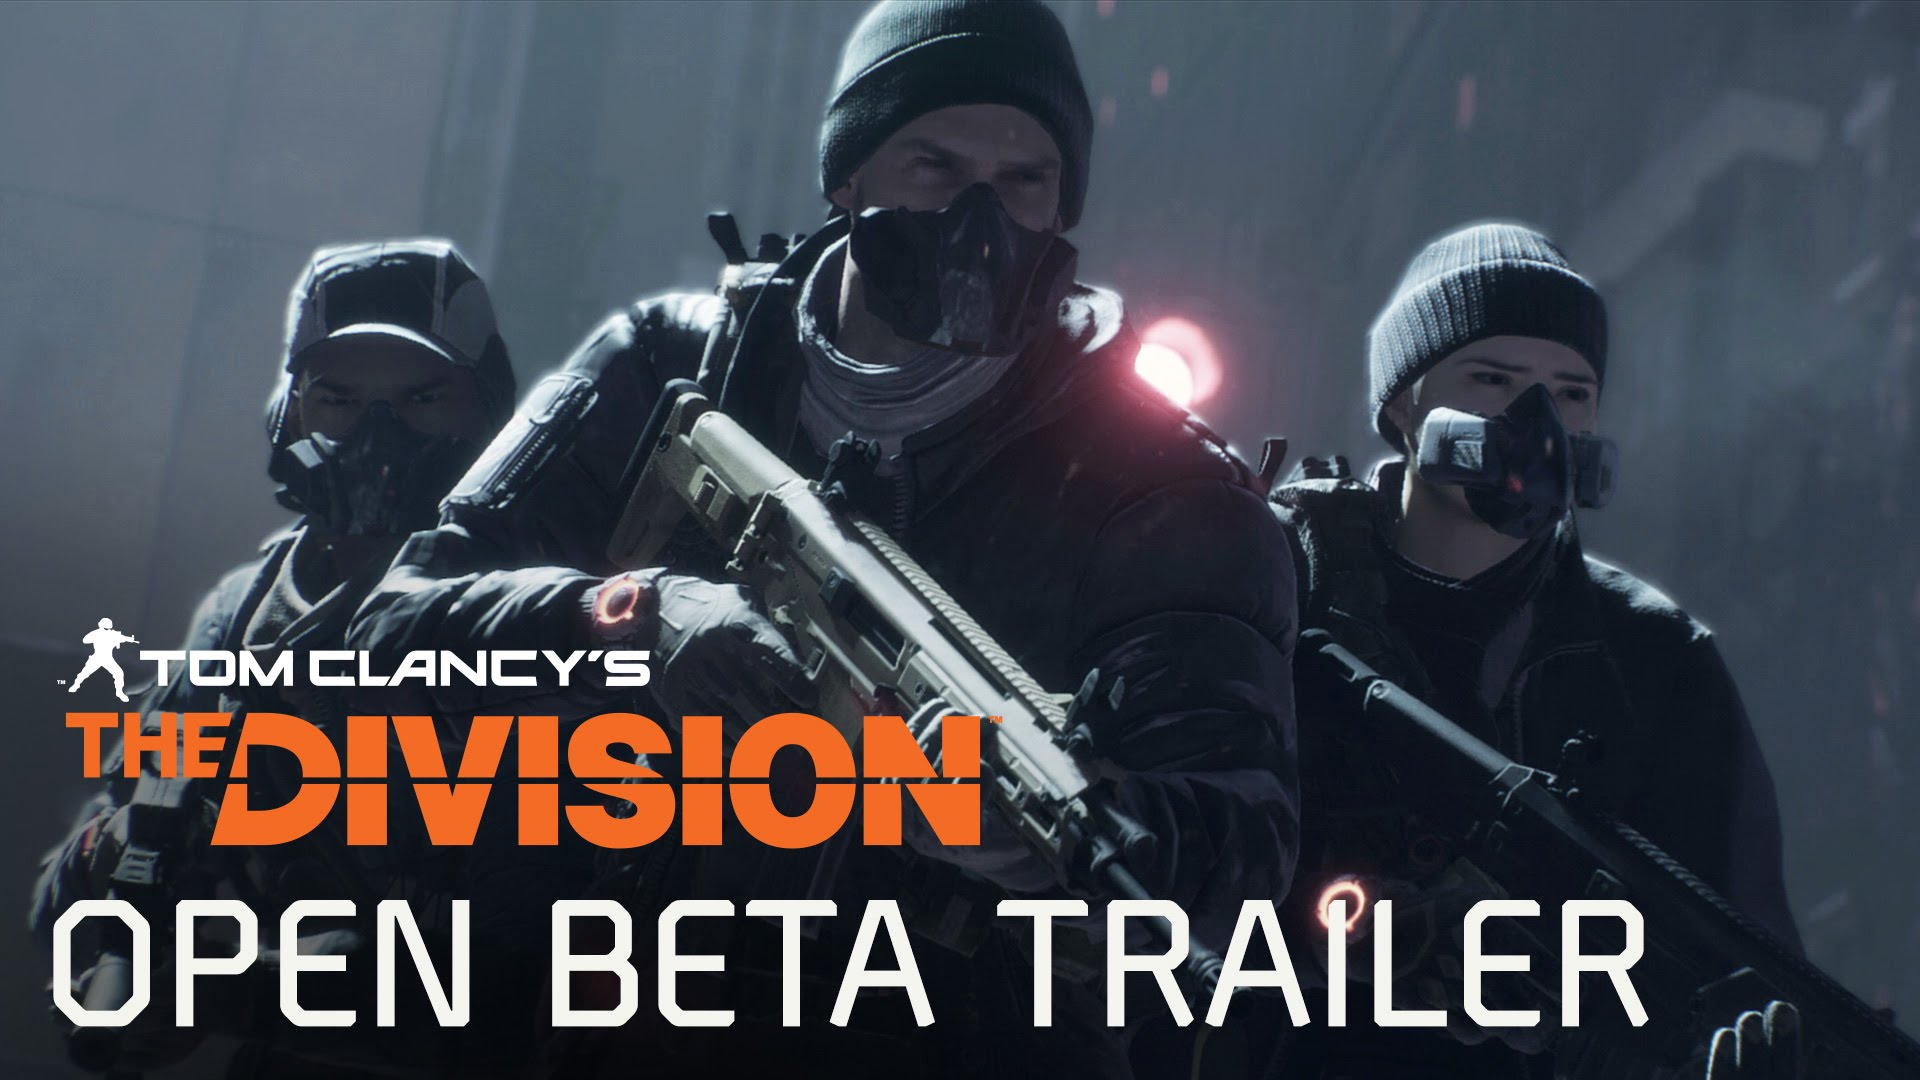 Tom Clancy's The Division - Open Beta Trailer [EUROPE]